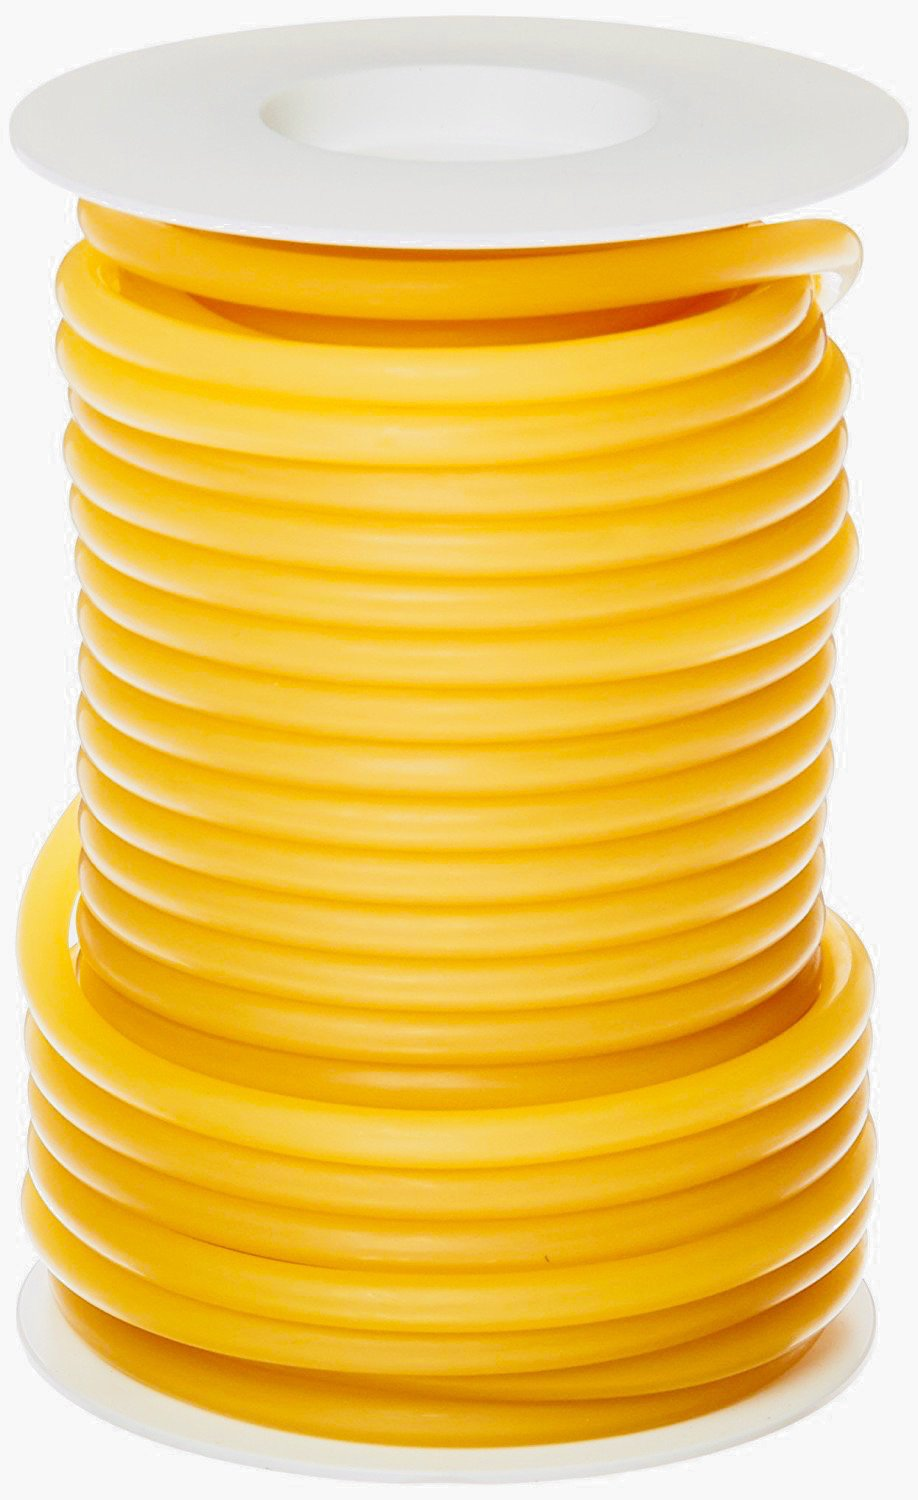 Pivit Flexible Seamless Natural Latex Rubber Band Tubing | 1/4' ID, 5/16' OD, 1/32' Wall Thickness | 50ft One Continuous Length | Extreme Flexibility, Durability & Elastic Stretch Memory | Made in USA 5/16 OD